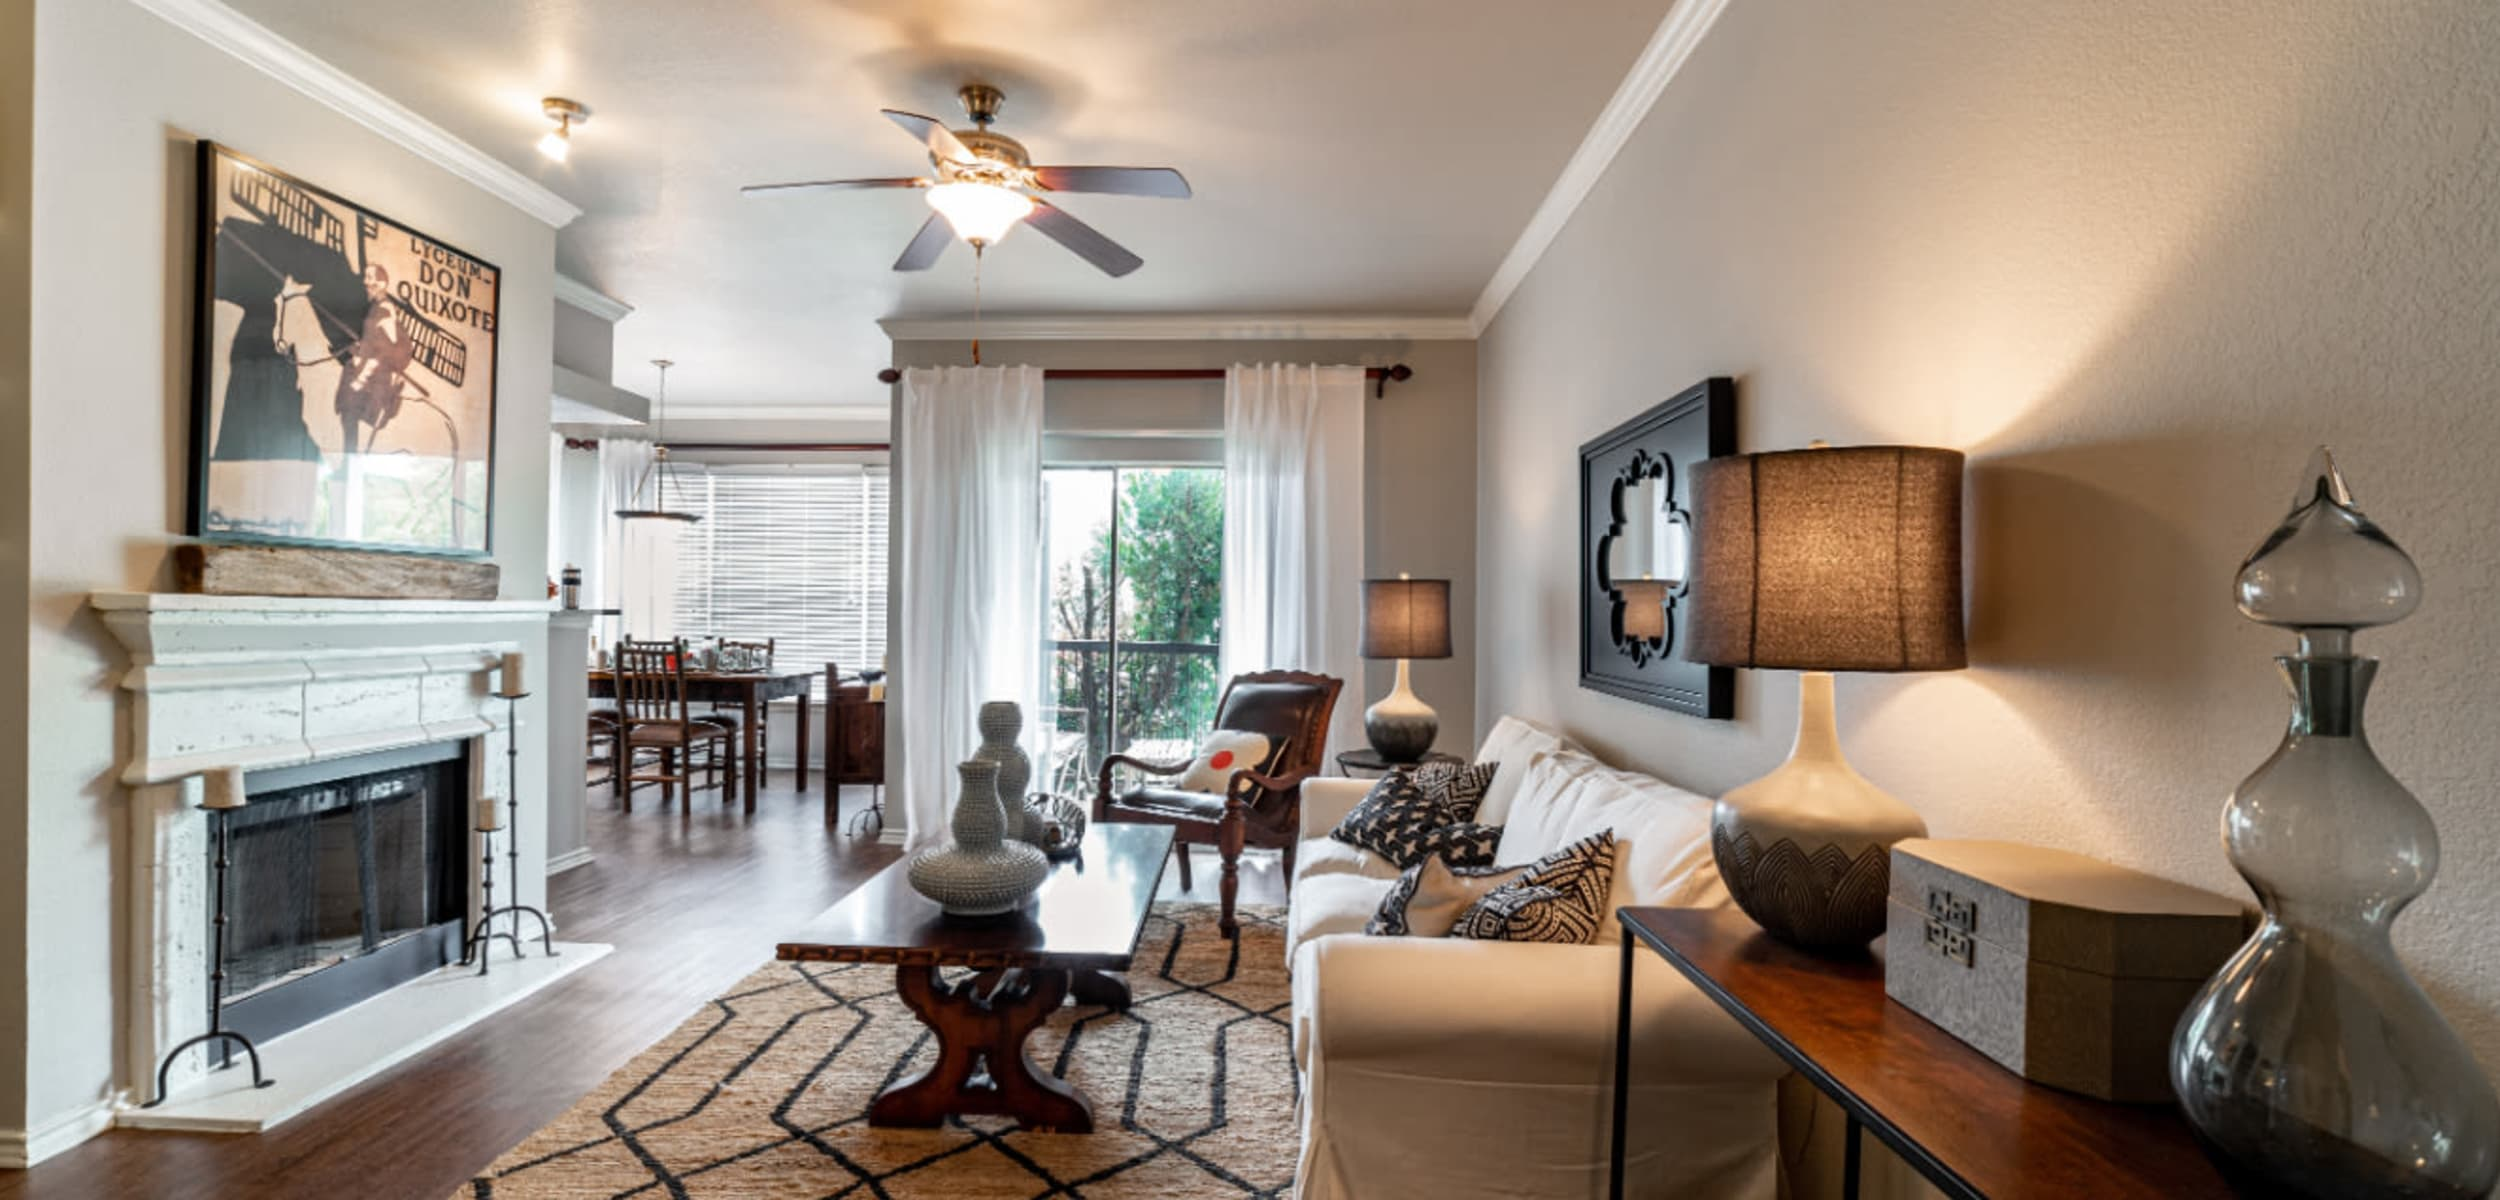 Living space at Marquis at Lantana in Flower Mound, Texas